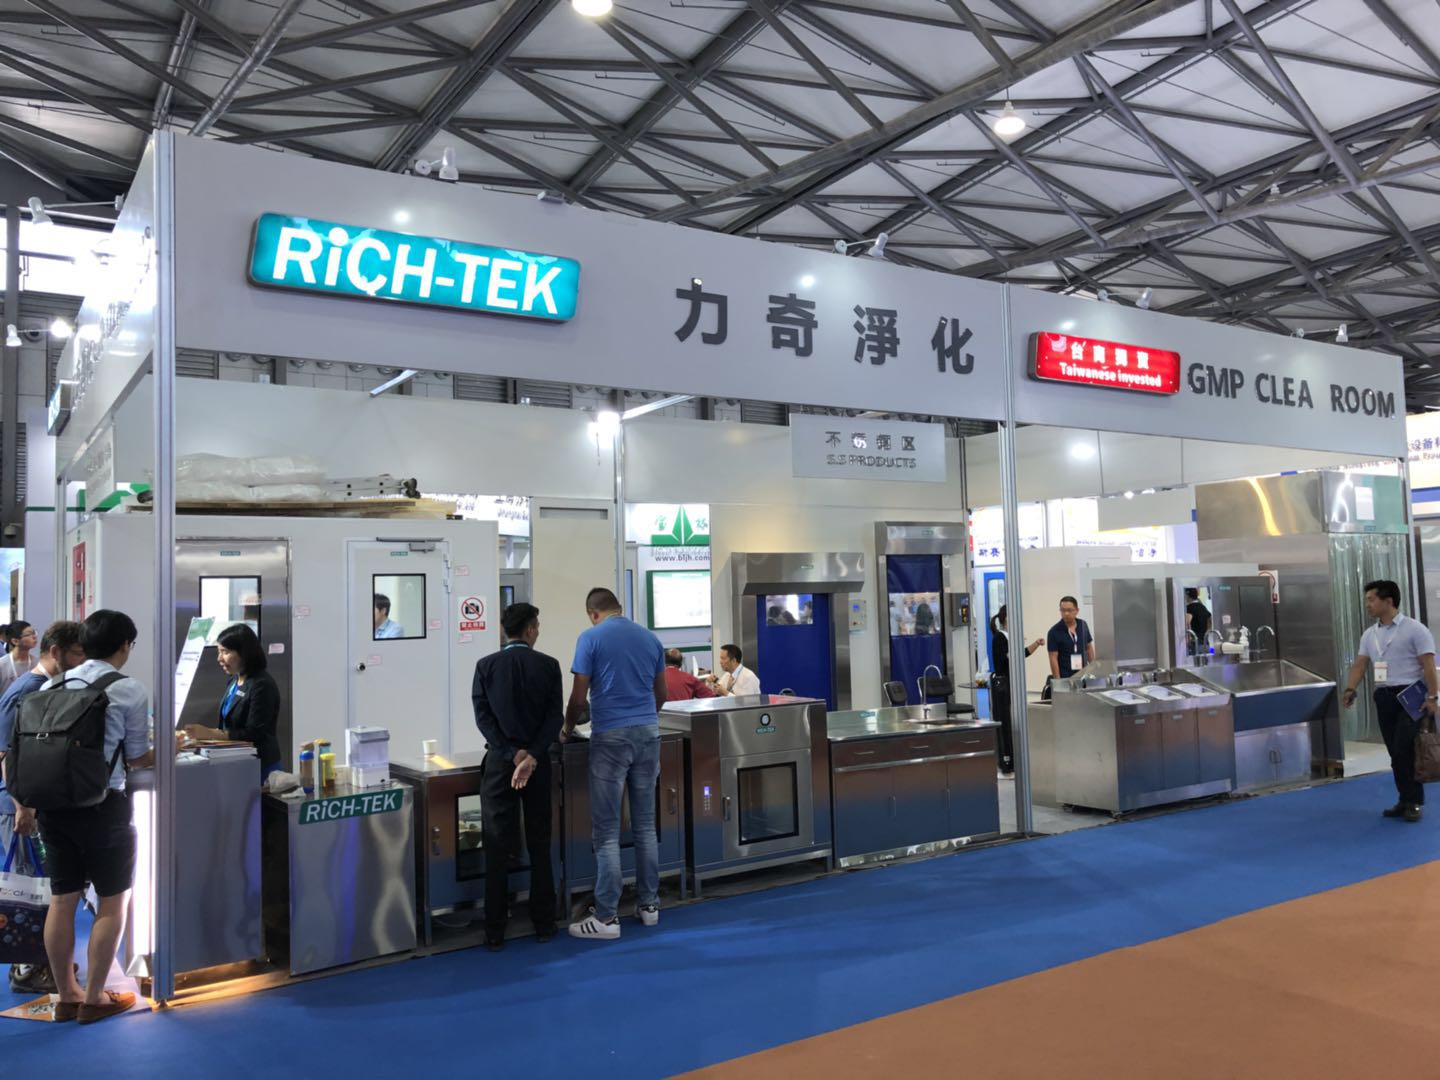 Rich-tek attended ACHEMA Exhibition in Germany from 11th to 15th,June and CPHI Exhibition Center from 20th to 22th,June 2018